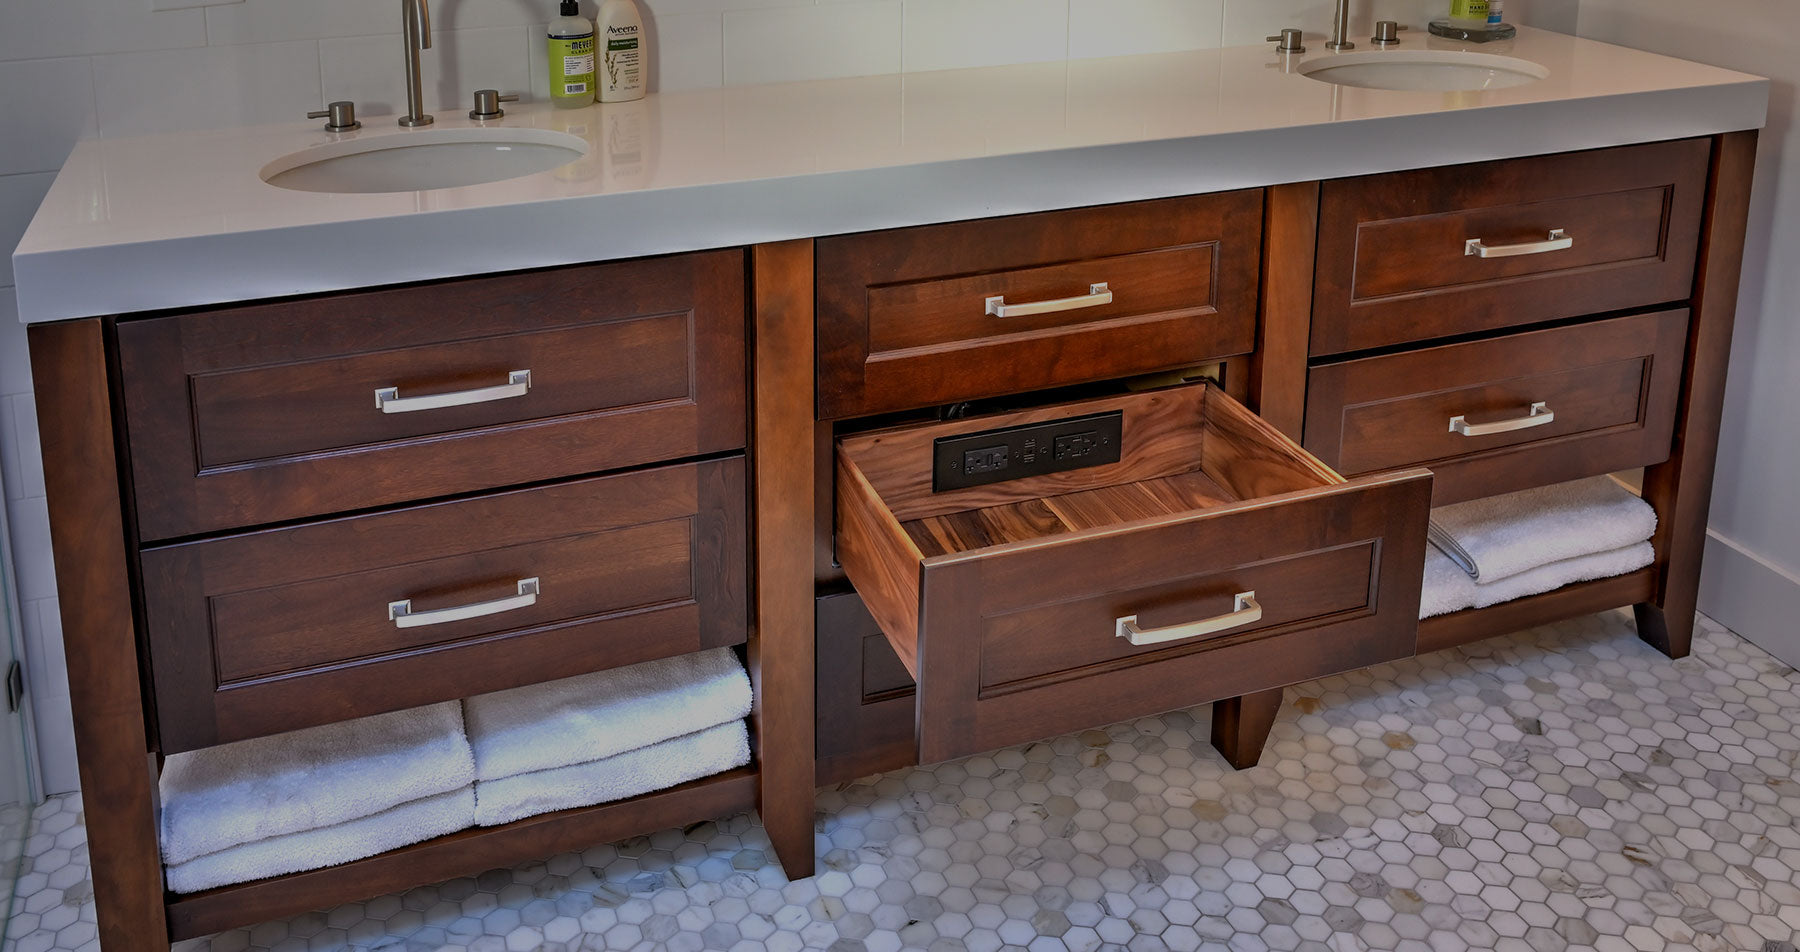 Style Drawer Blade Duo outlet in bathroom vanity